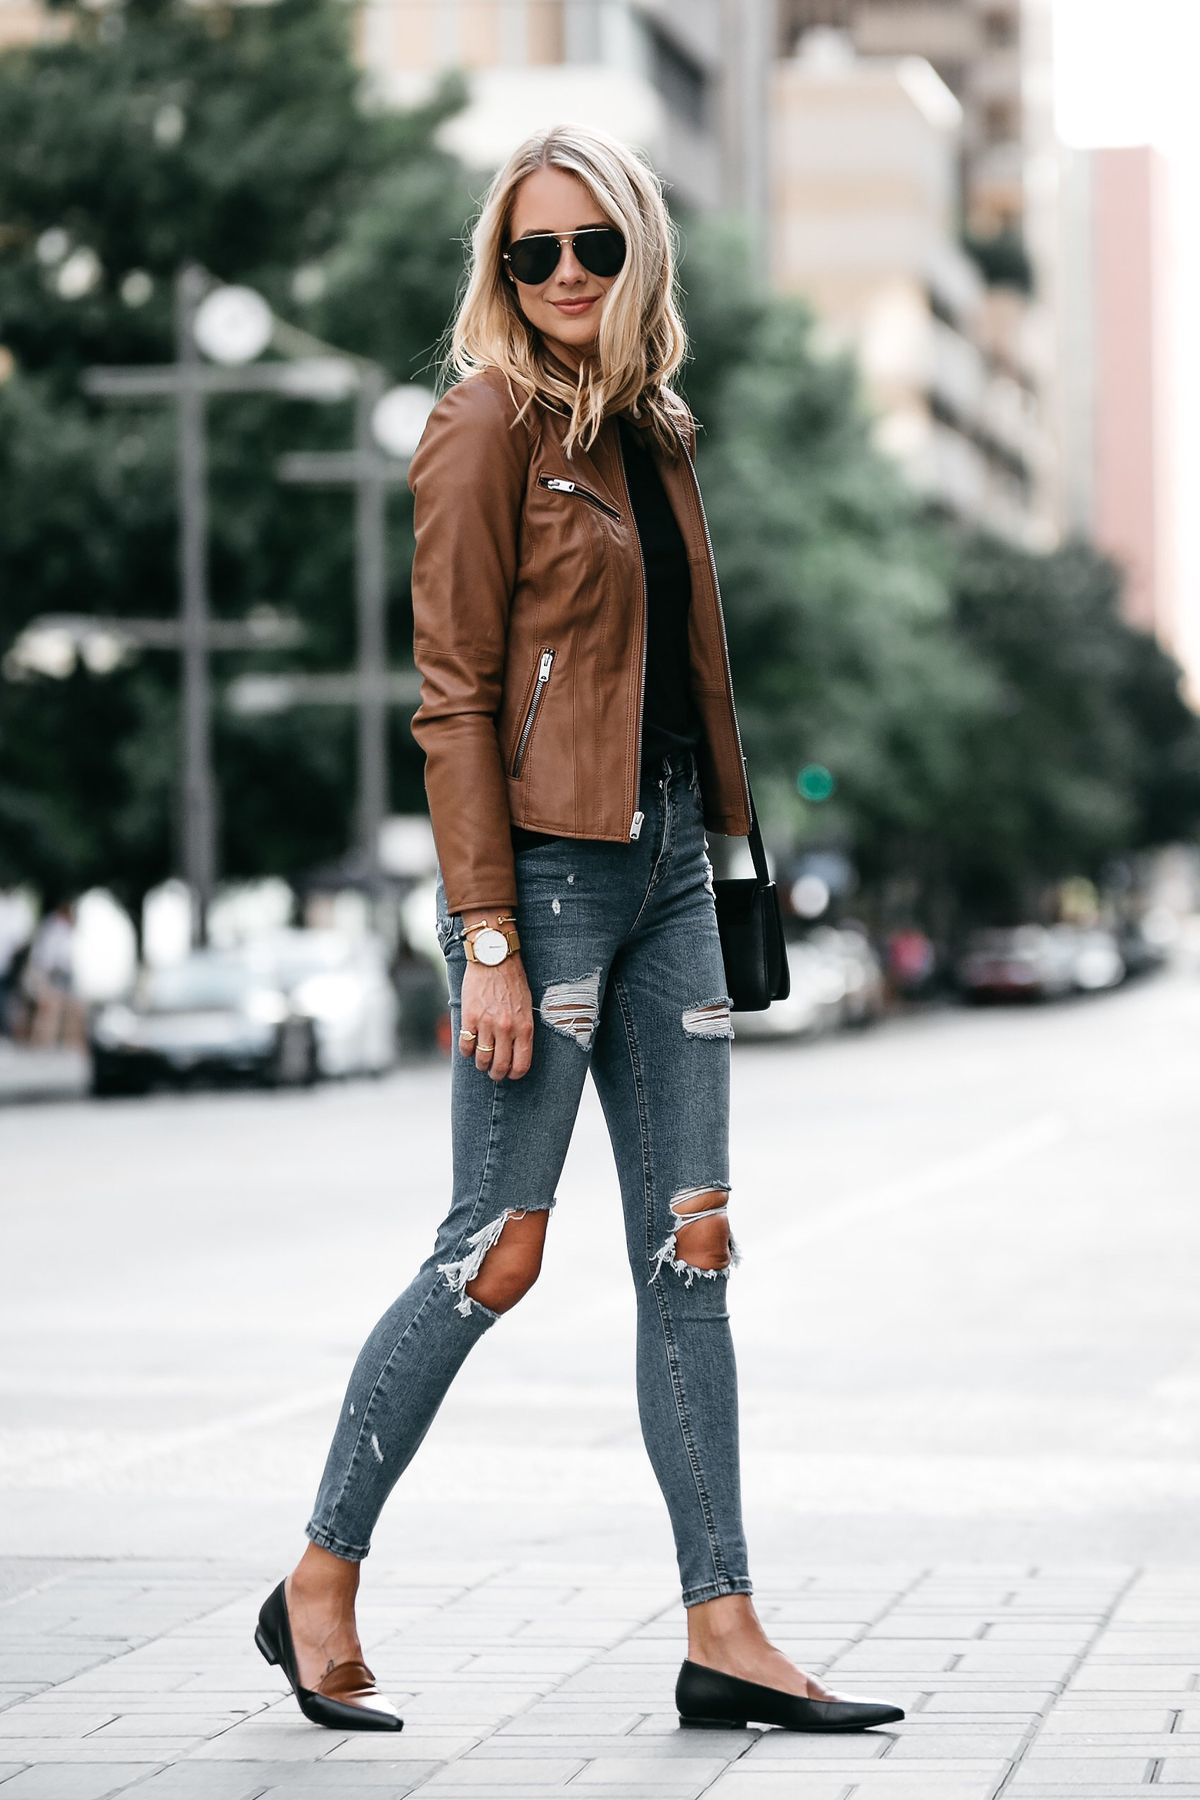 Blonde Woman Wearing Tan Leather Jacket Black Tshirt Denim